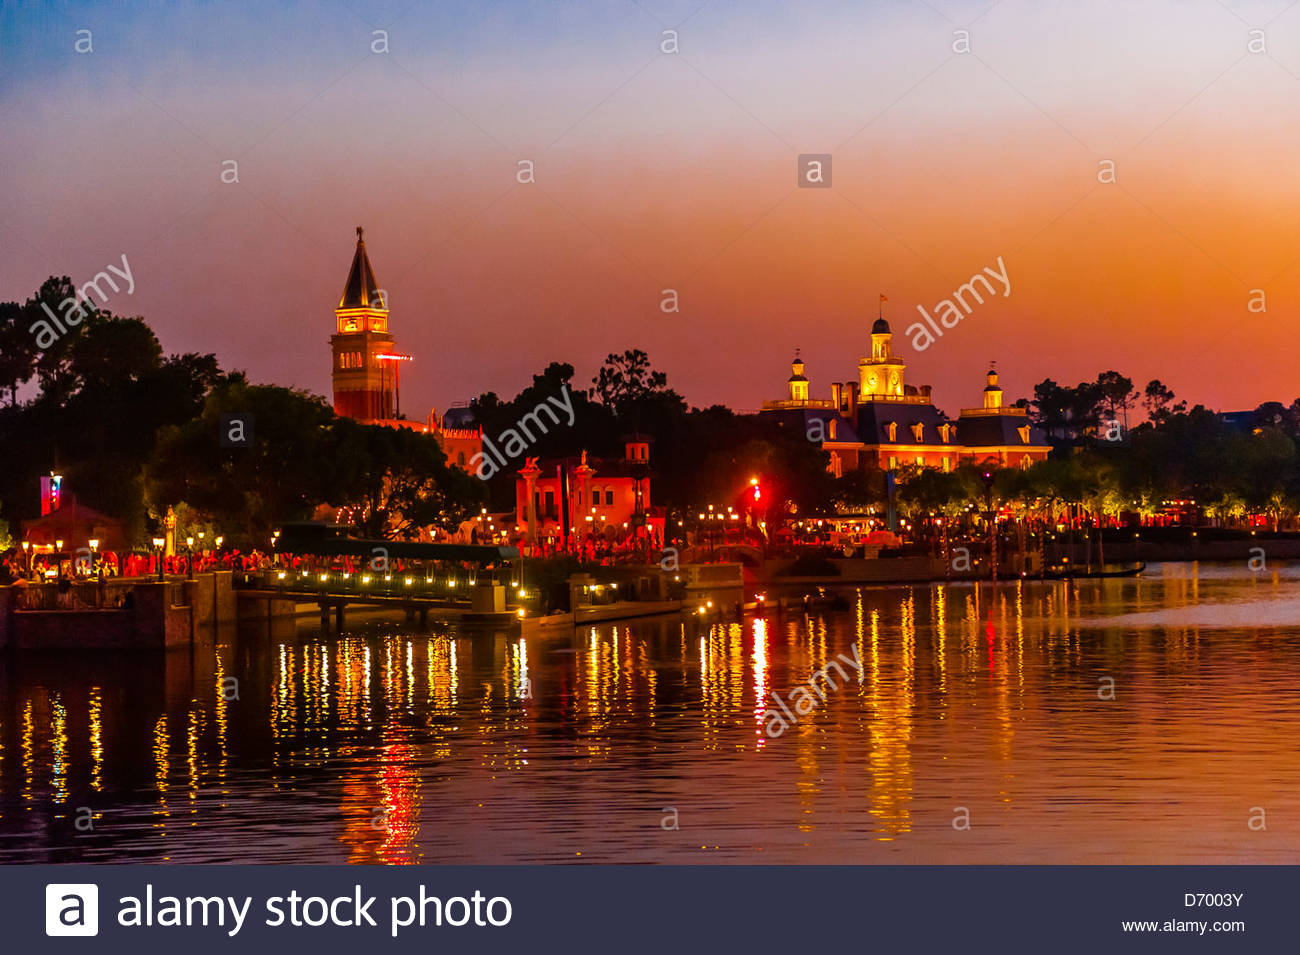 Pavillon de l'Italie et l'aventure américaine, World Showcase, Epcot, Walt Disney World, Orlando, Floride, Photo Stock